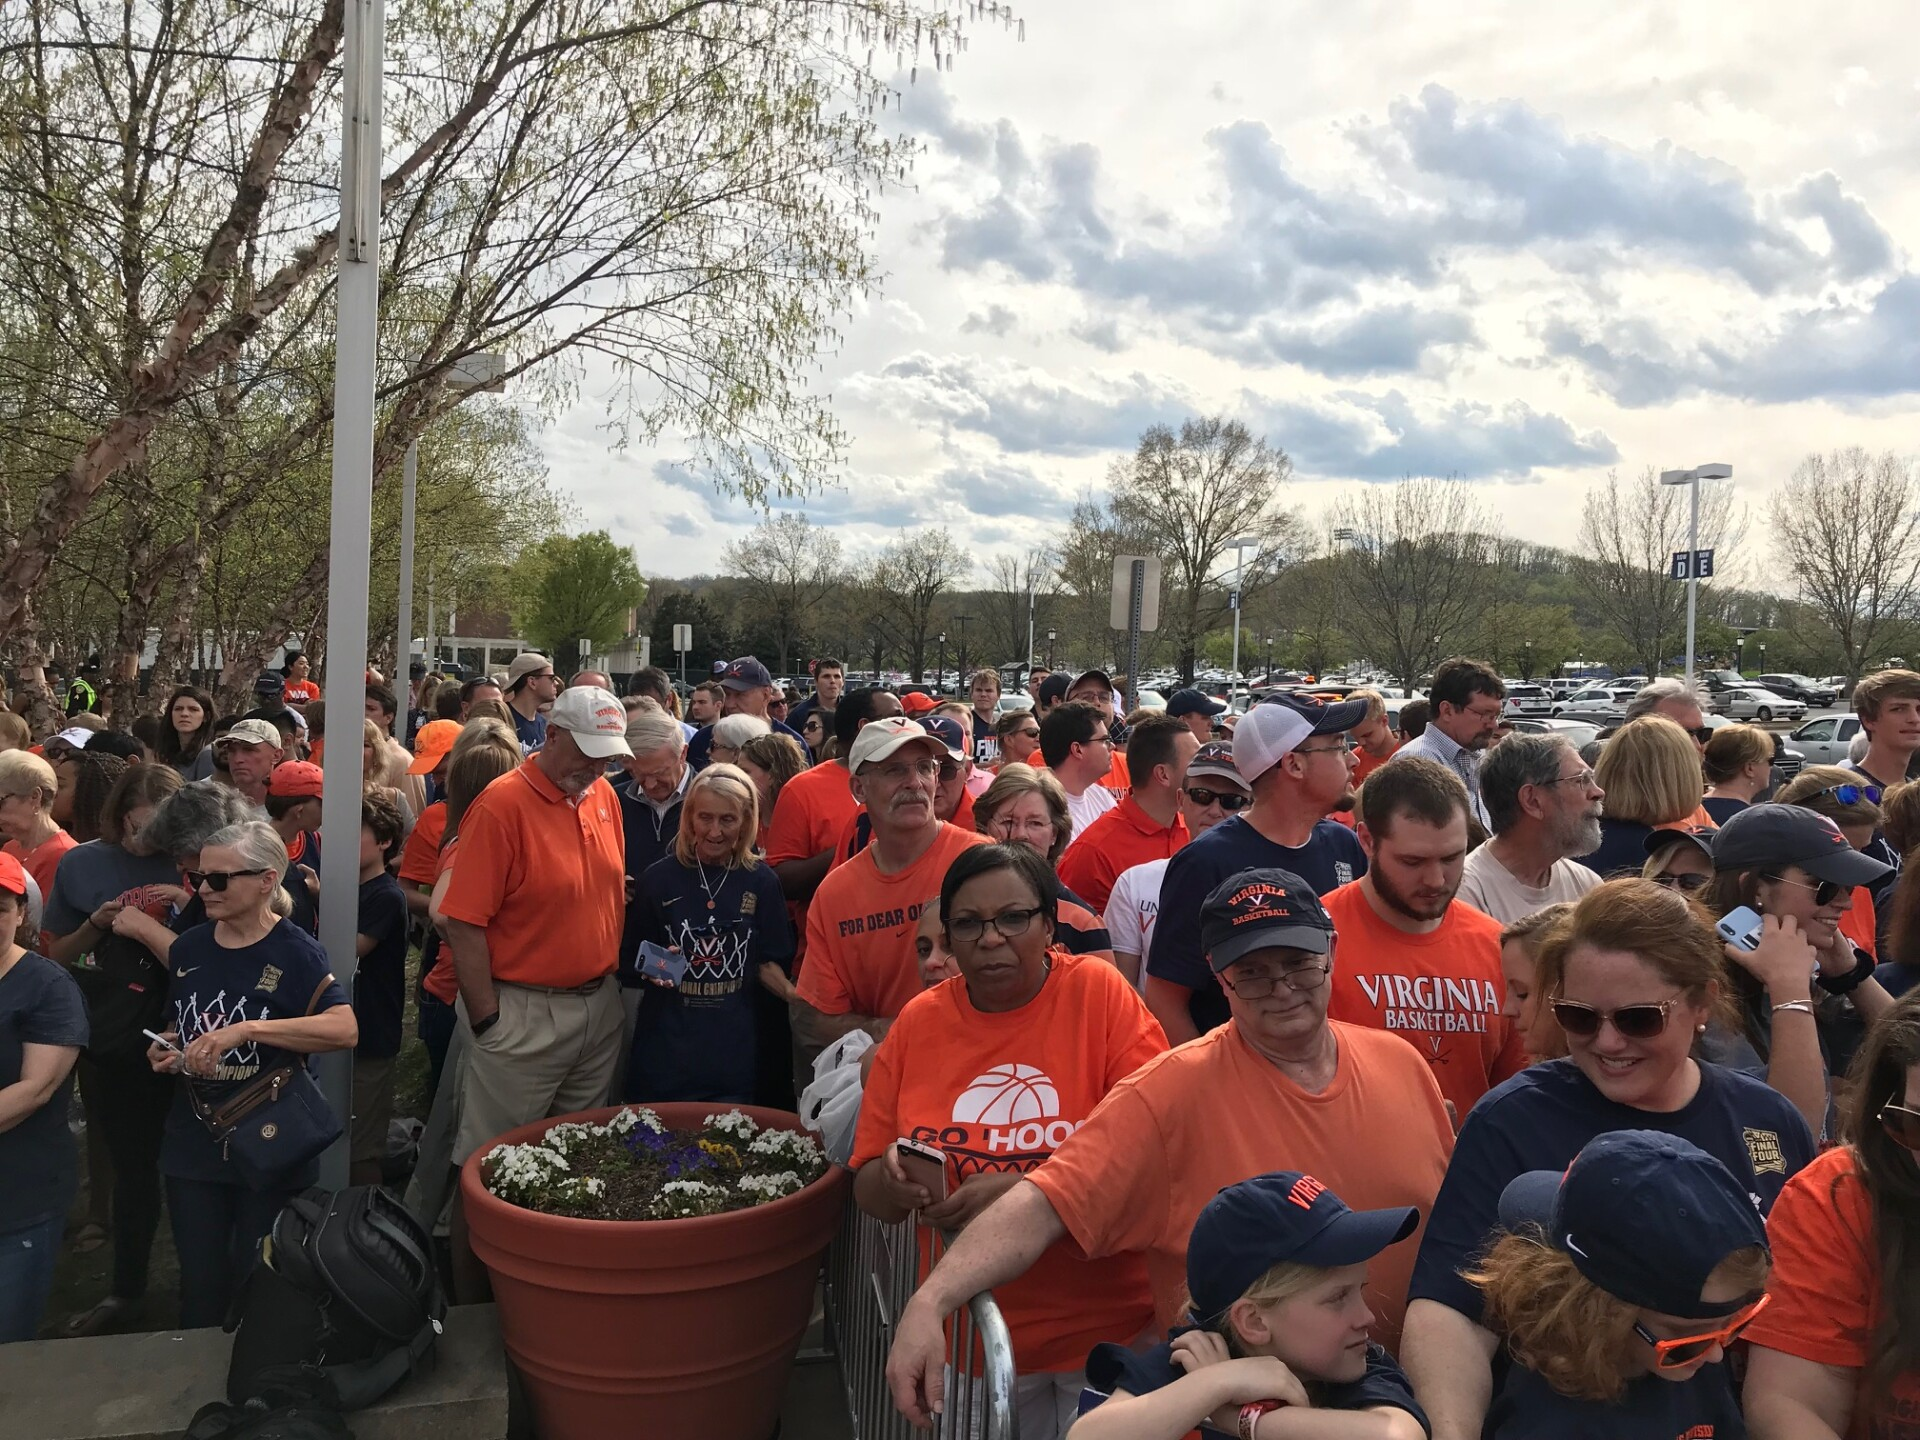 Photos: Making history! UVA fans welcome home their NCAA champions